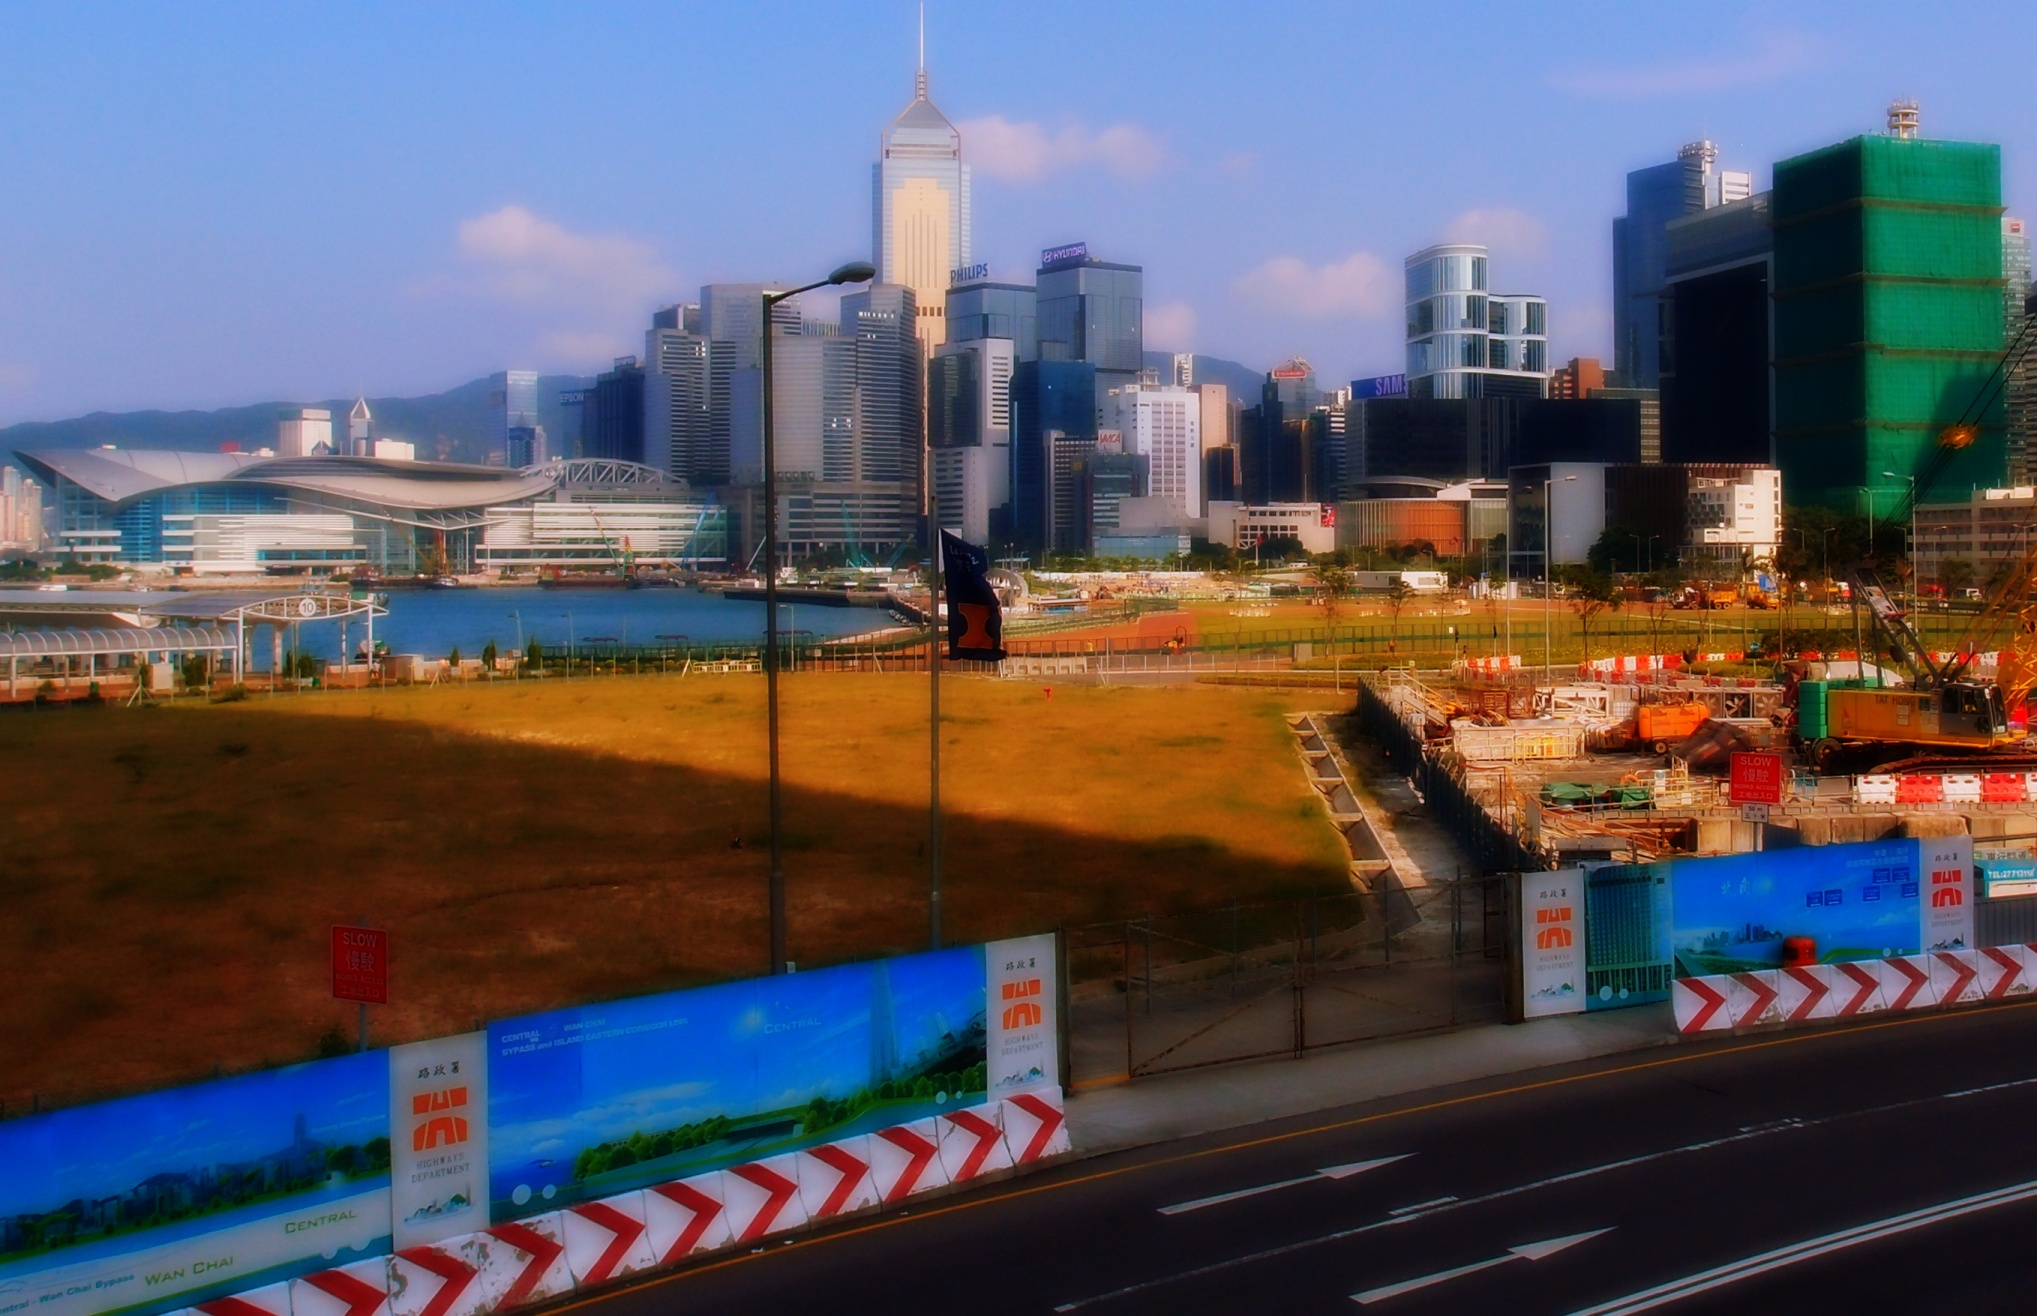 This is supposed to be the new waterfront park in Central next to the Star Ferry, work seems to have stopped as we have weeds rather than lush grass and tree's.....